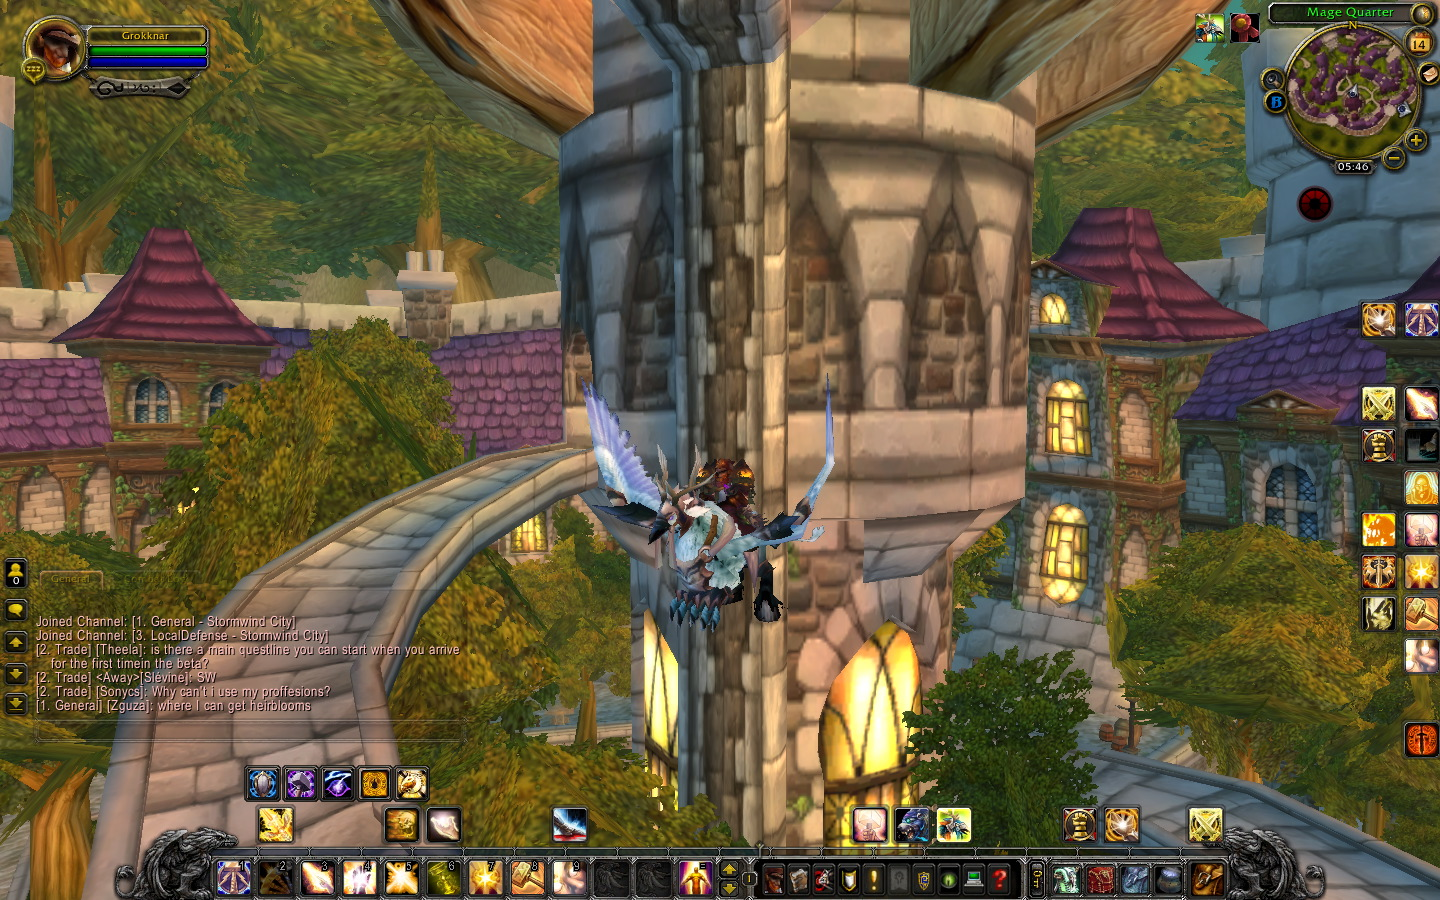 First thing to do on arrival in Stormwind? Fly of course :)